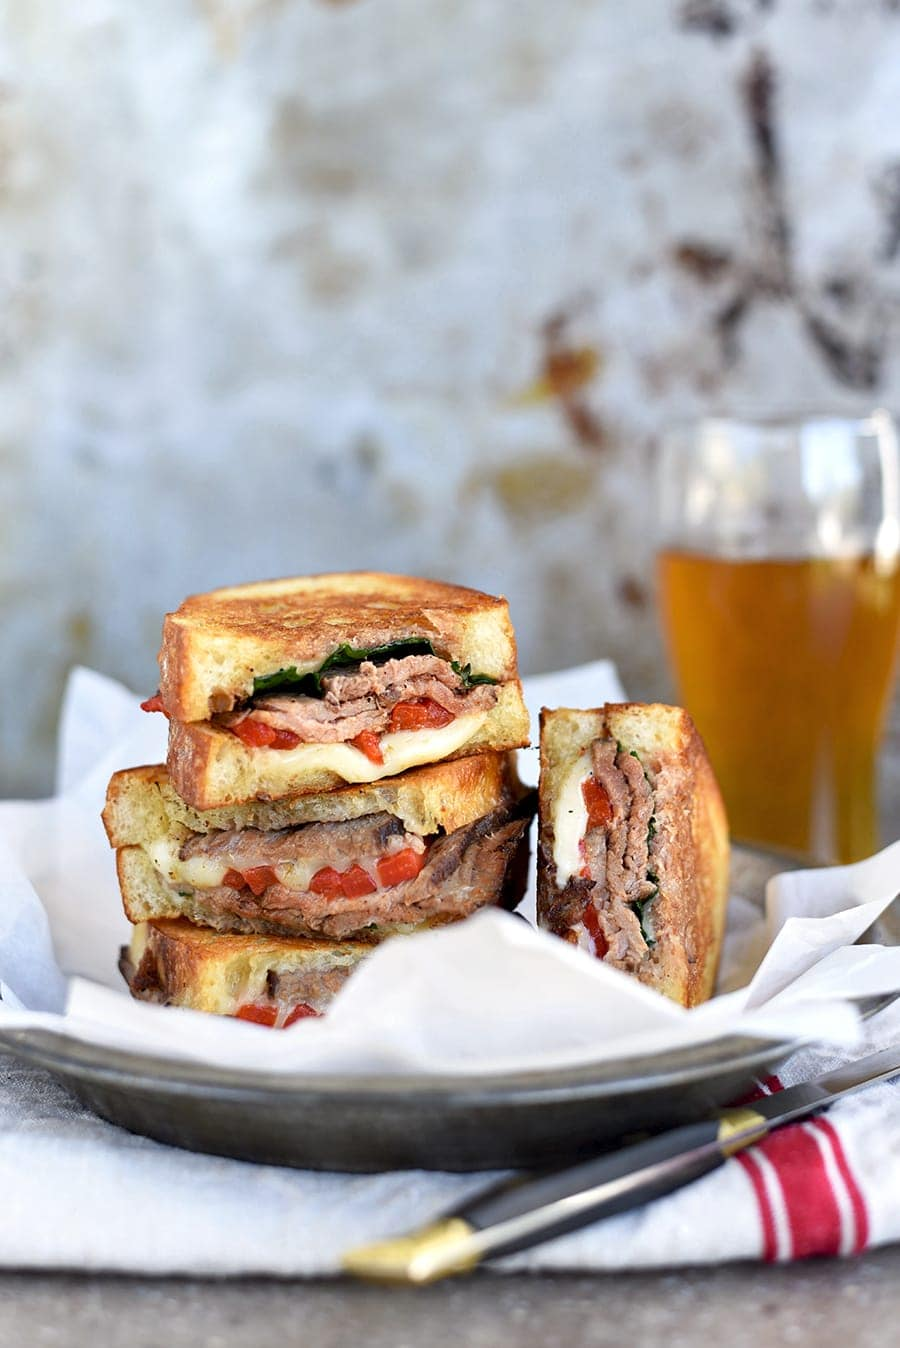 Everyone loves pub grub! You can create the gastro pub vibe at home with this spectacularly golden, pan grilled steak sandwich!